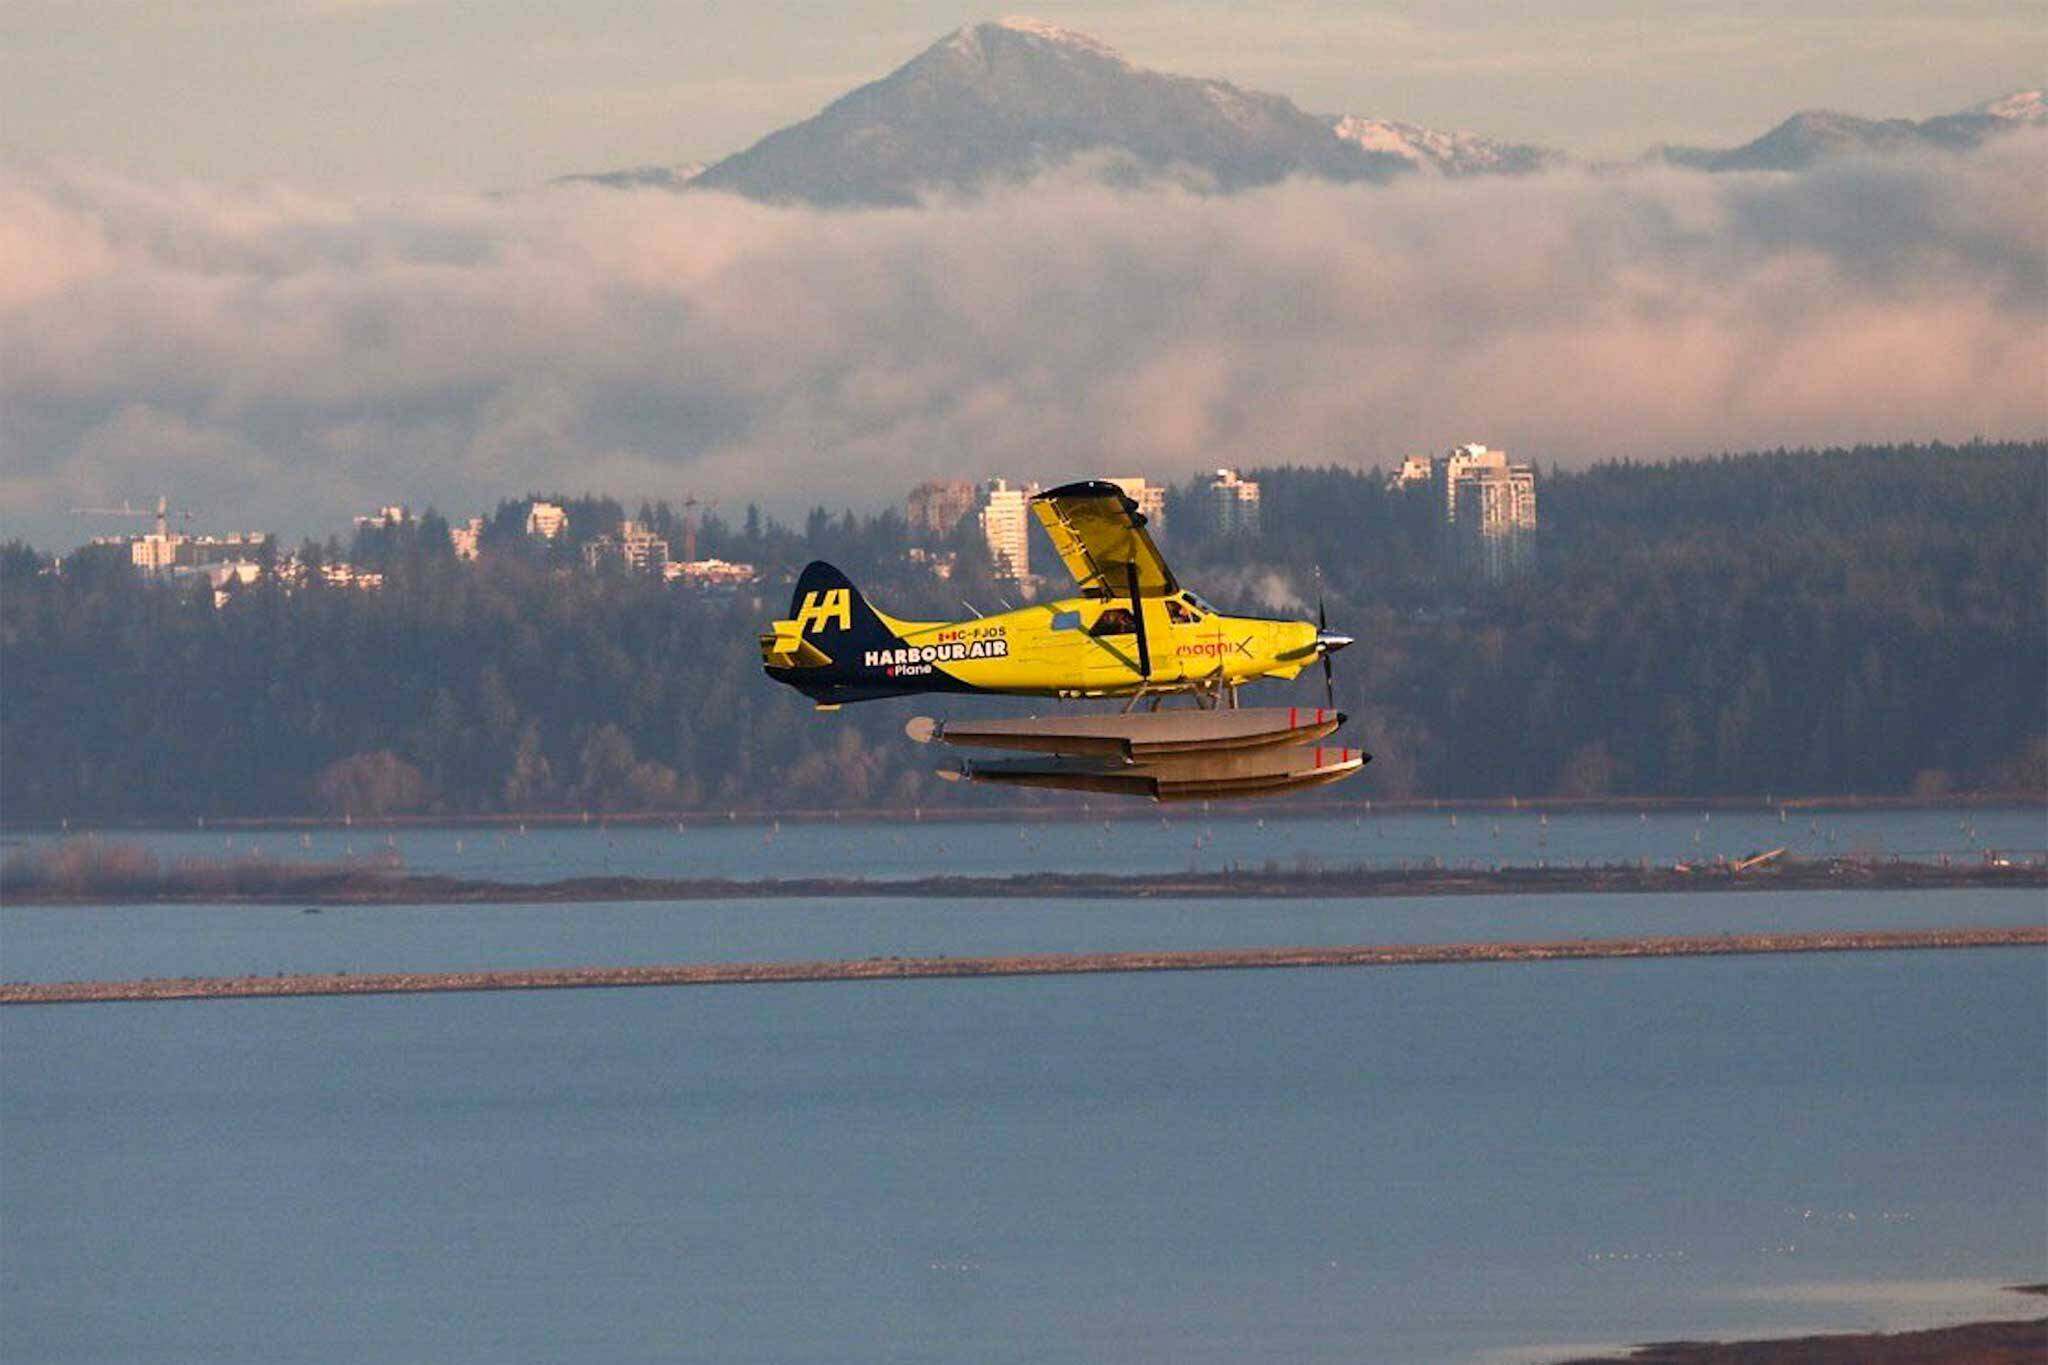 harbour air electric